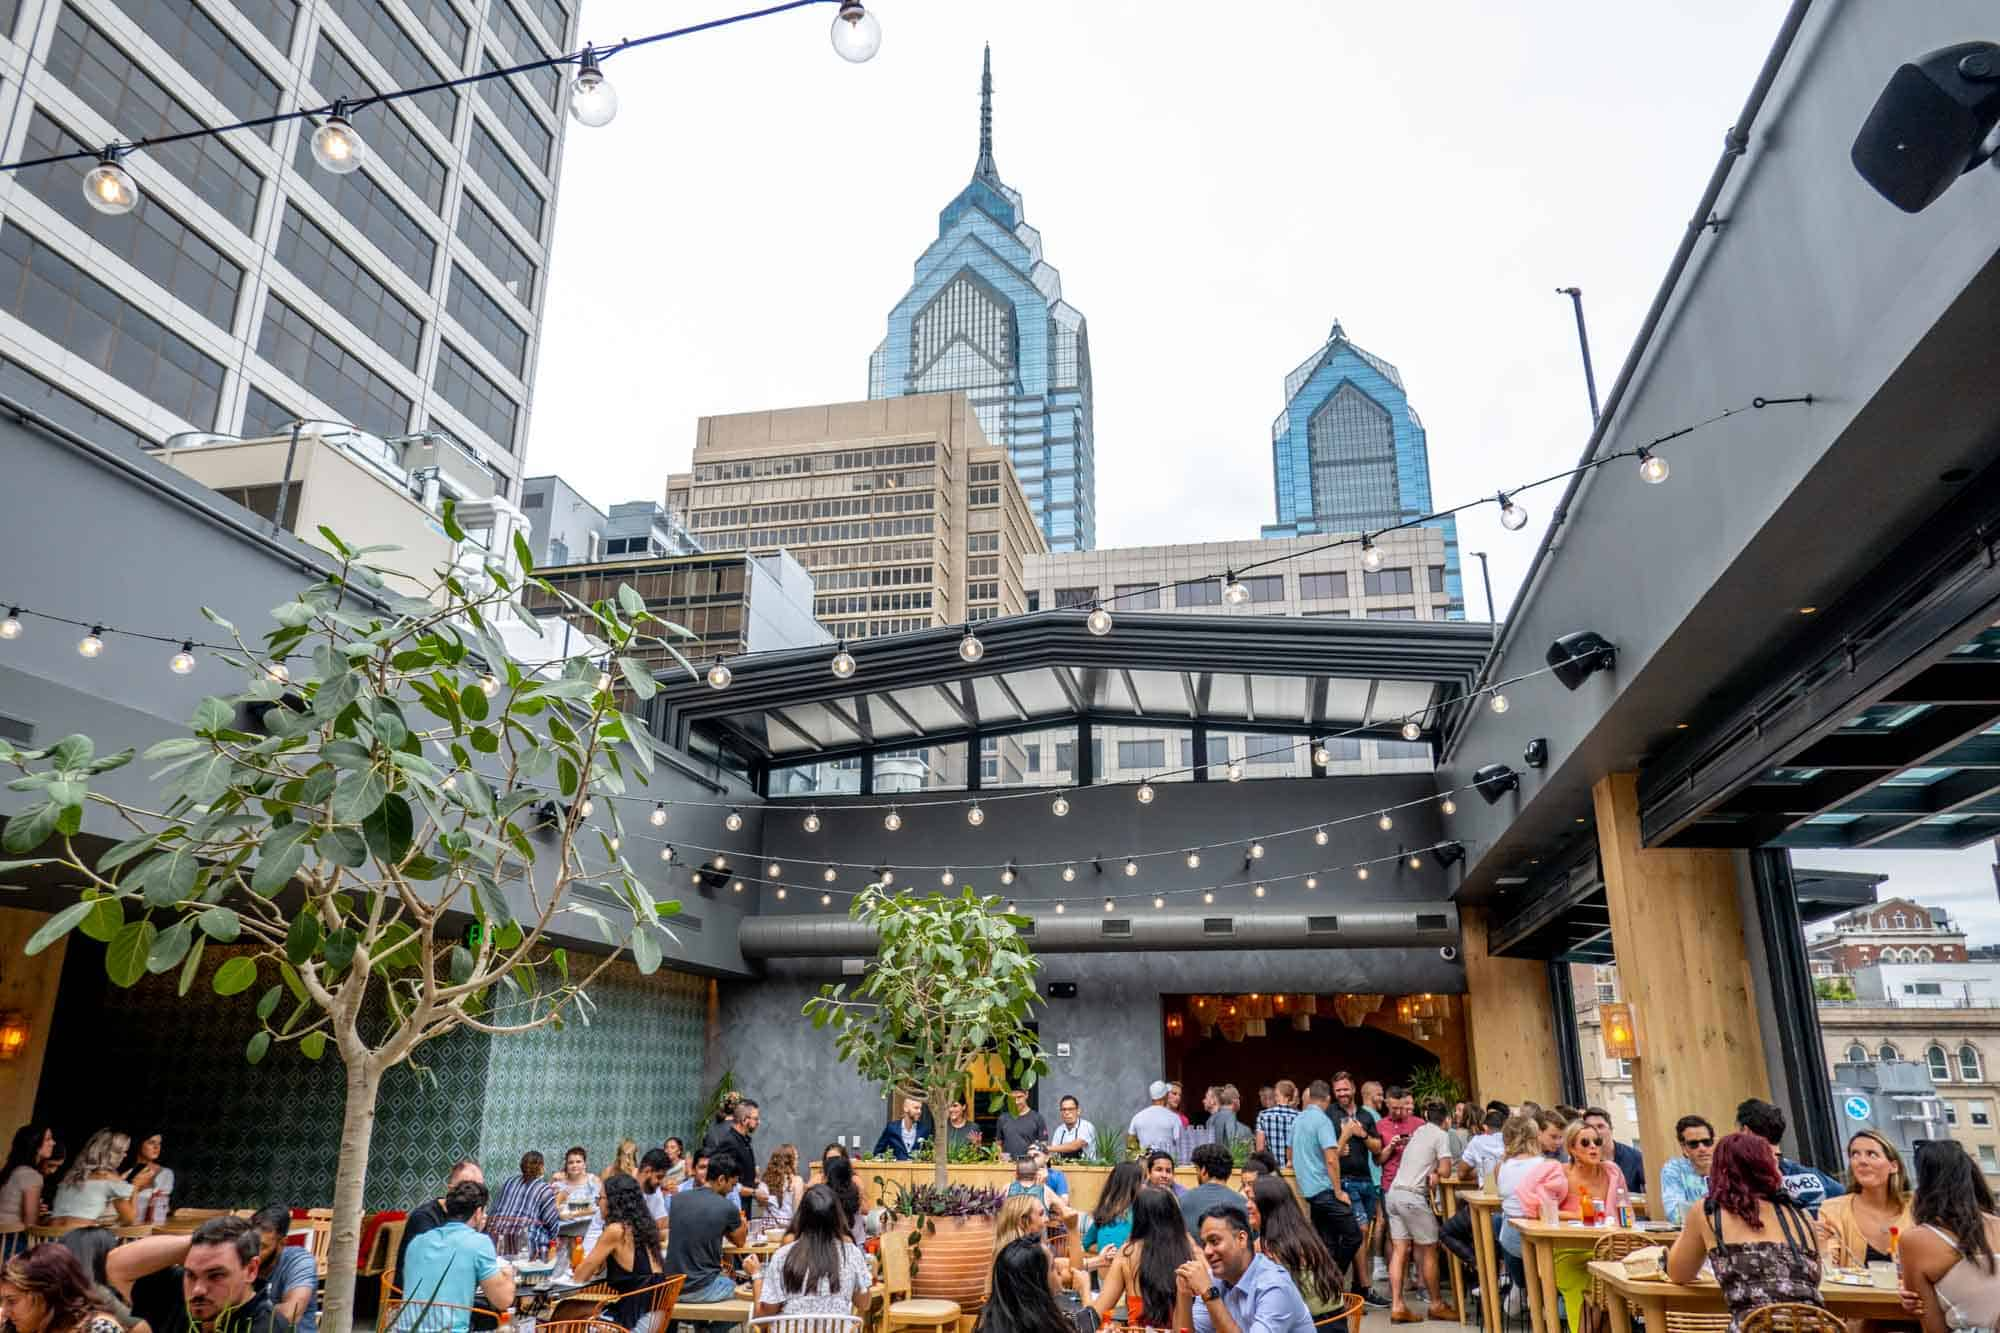 City buildings towering above a rooftop restaurant with a retractable roof where people are eating